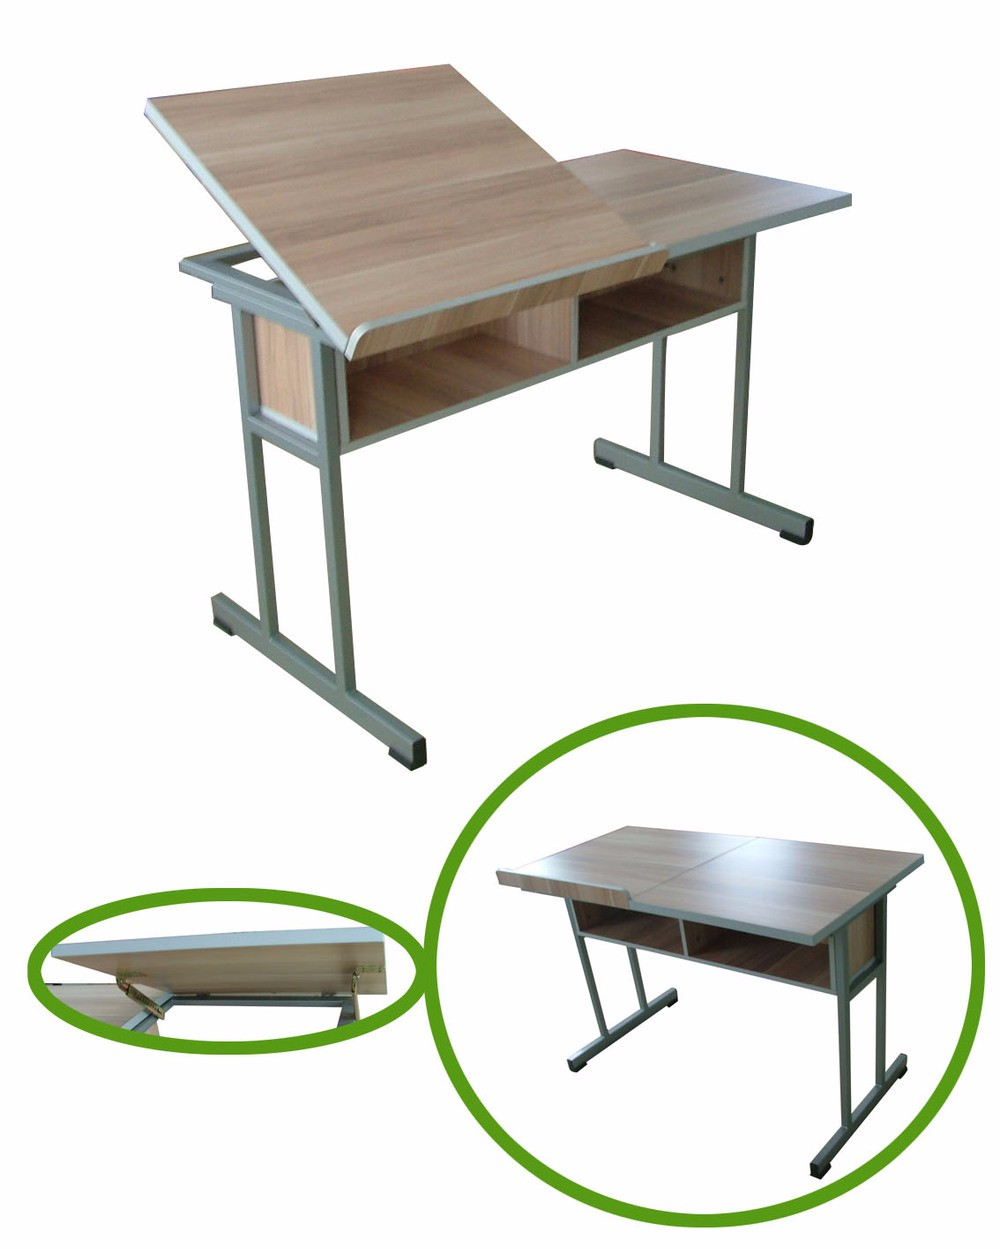 Adjustable Height Drafting Table Wooden Desk Top Height Adjustable Drafting Table For School Drawing Class Buy Height Adjustable Drafting Table Wooden Desk Top Drafting